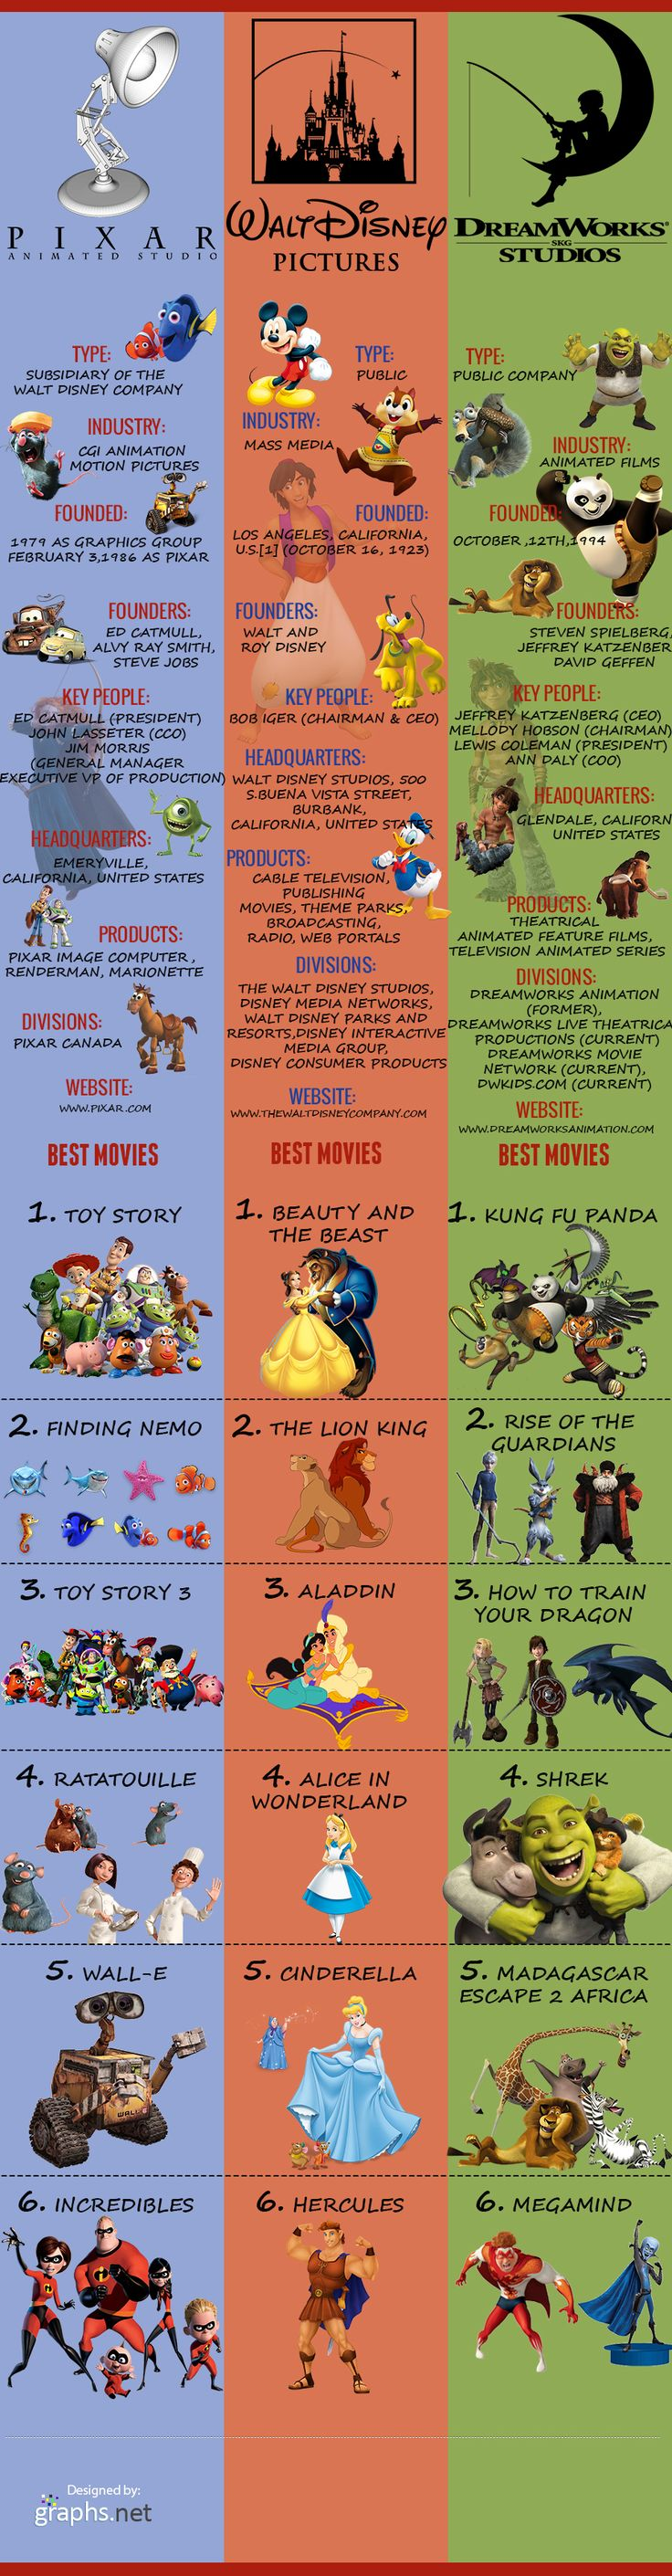 Pixar vs DreamWorks vs Disney – Comparative Statistics Infographic I don't agree on the ranking of the movies though…